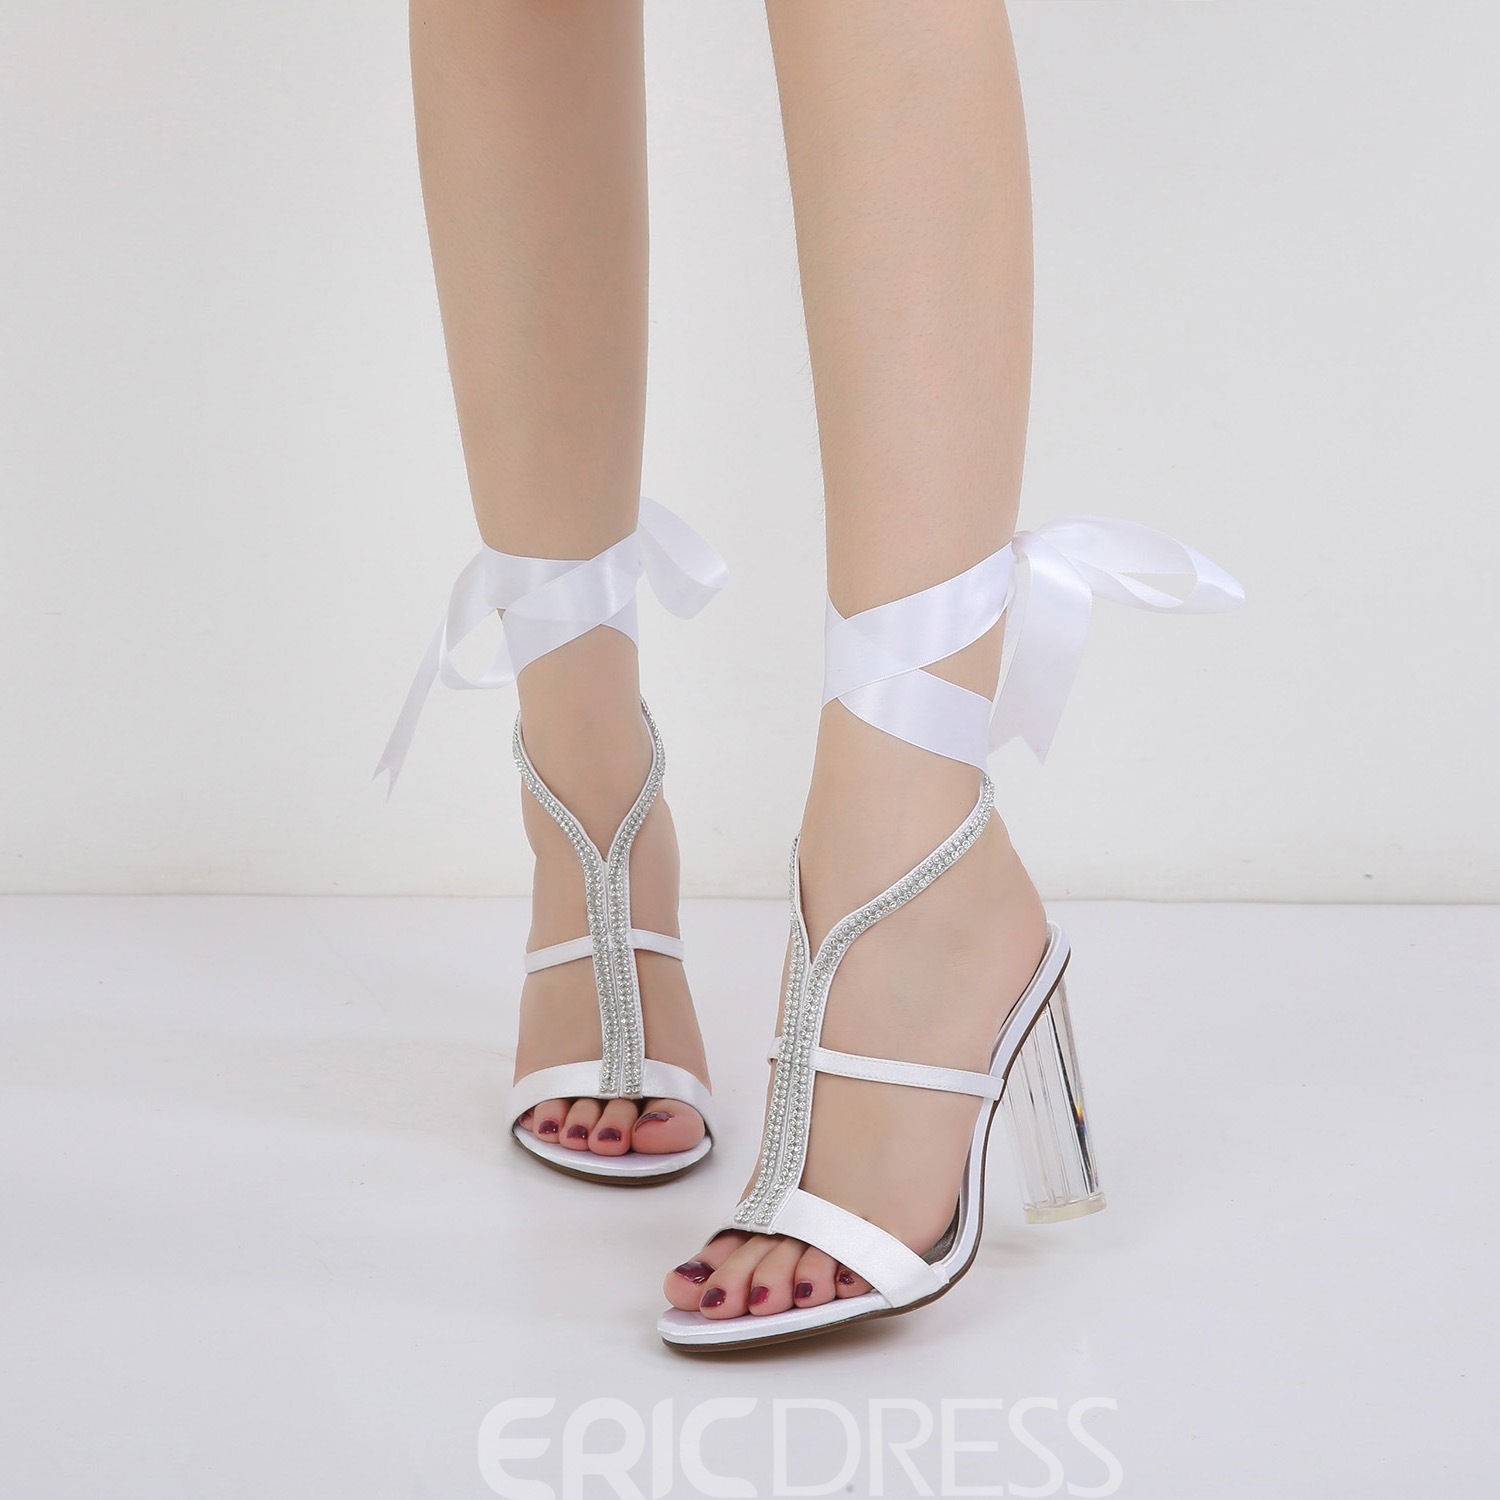 Ericdress Rhinestone Ribbon Strappy Clear Chunky Heel Wedding Shoes (12972303) 9bf6ff705917